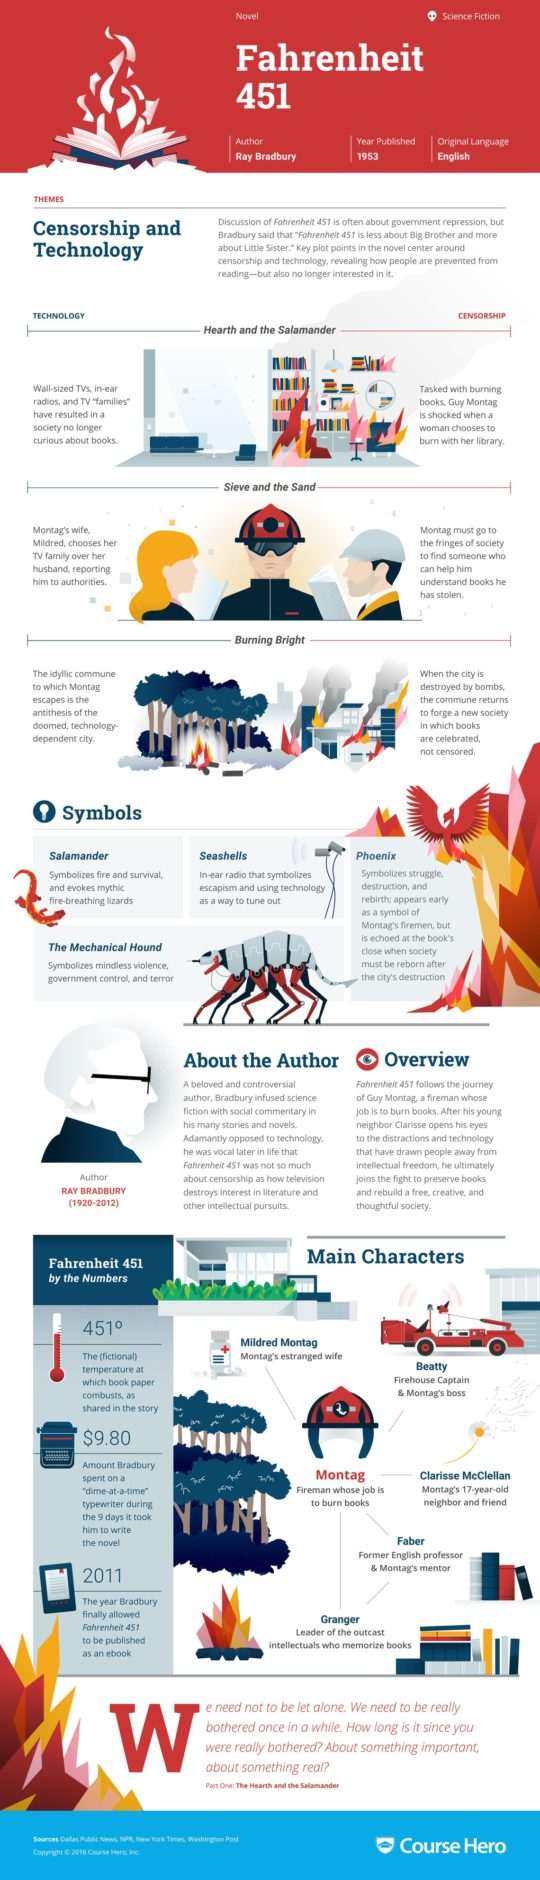 Fahrenheit 451 facts and figures #infographic